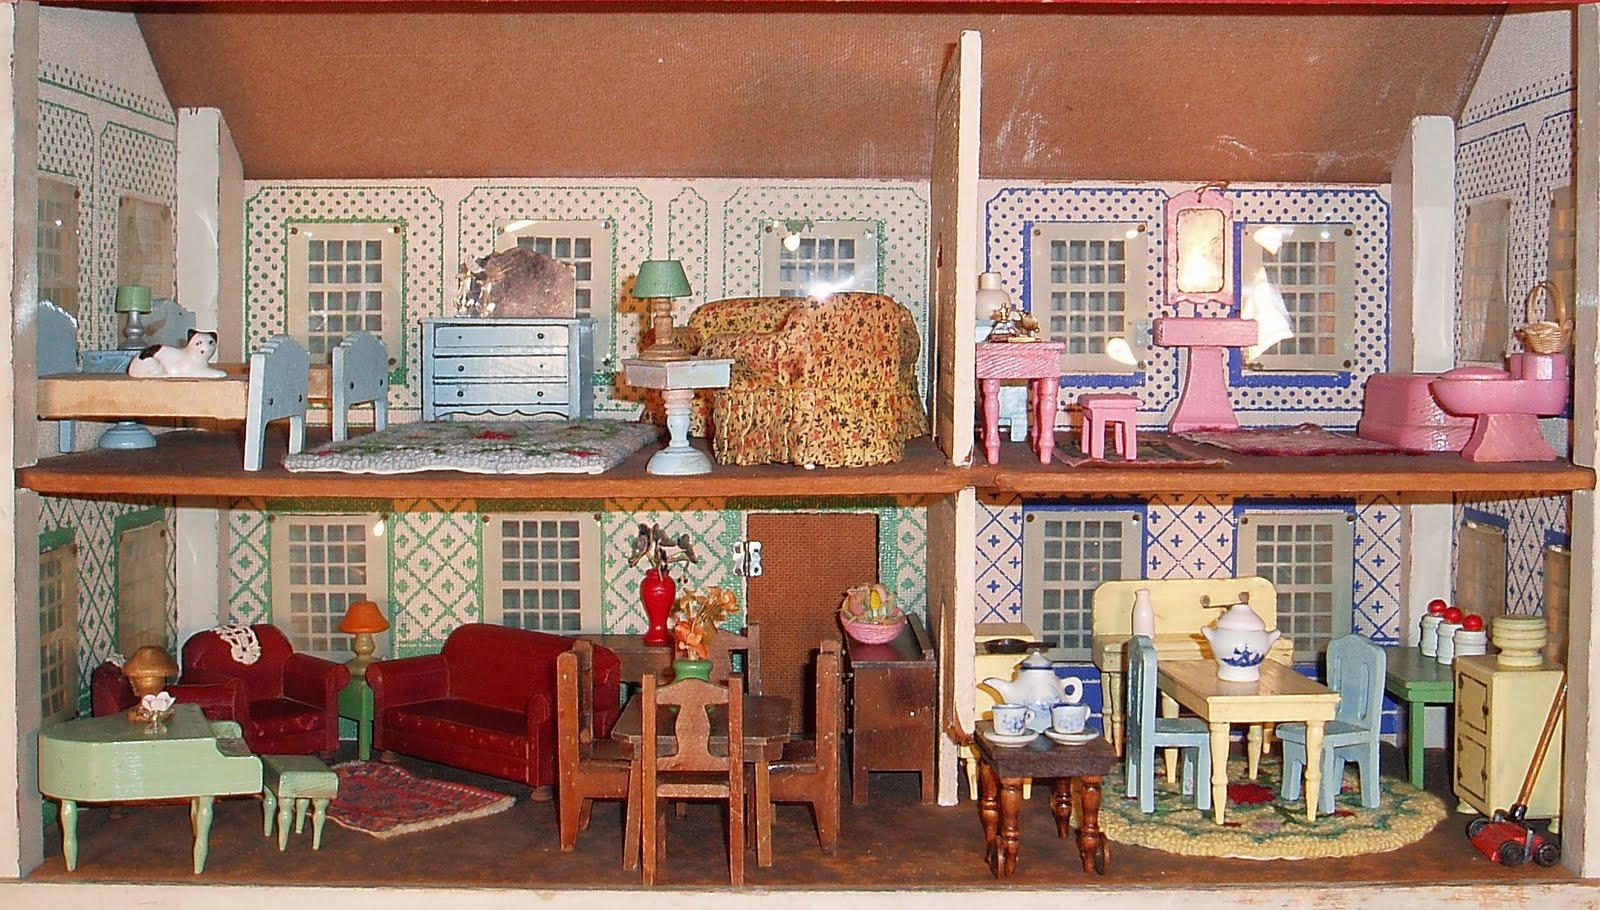 Schoenhutu0027s First Dollhouses Were Produced In 1917, But They Didnu0027t Start  Manufacturing Dollhouse Furniture Until 1928. Although They Made Dollhouse  ...